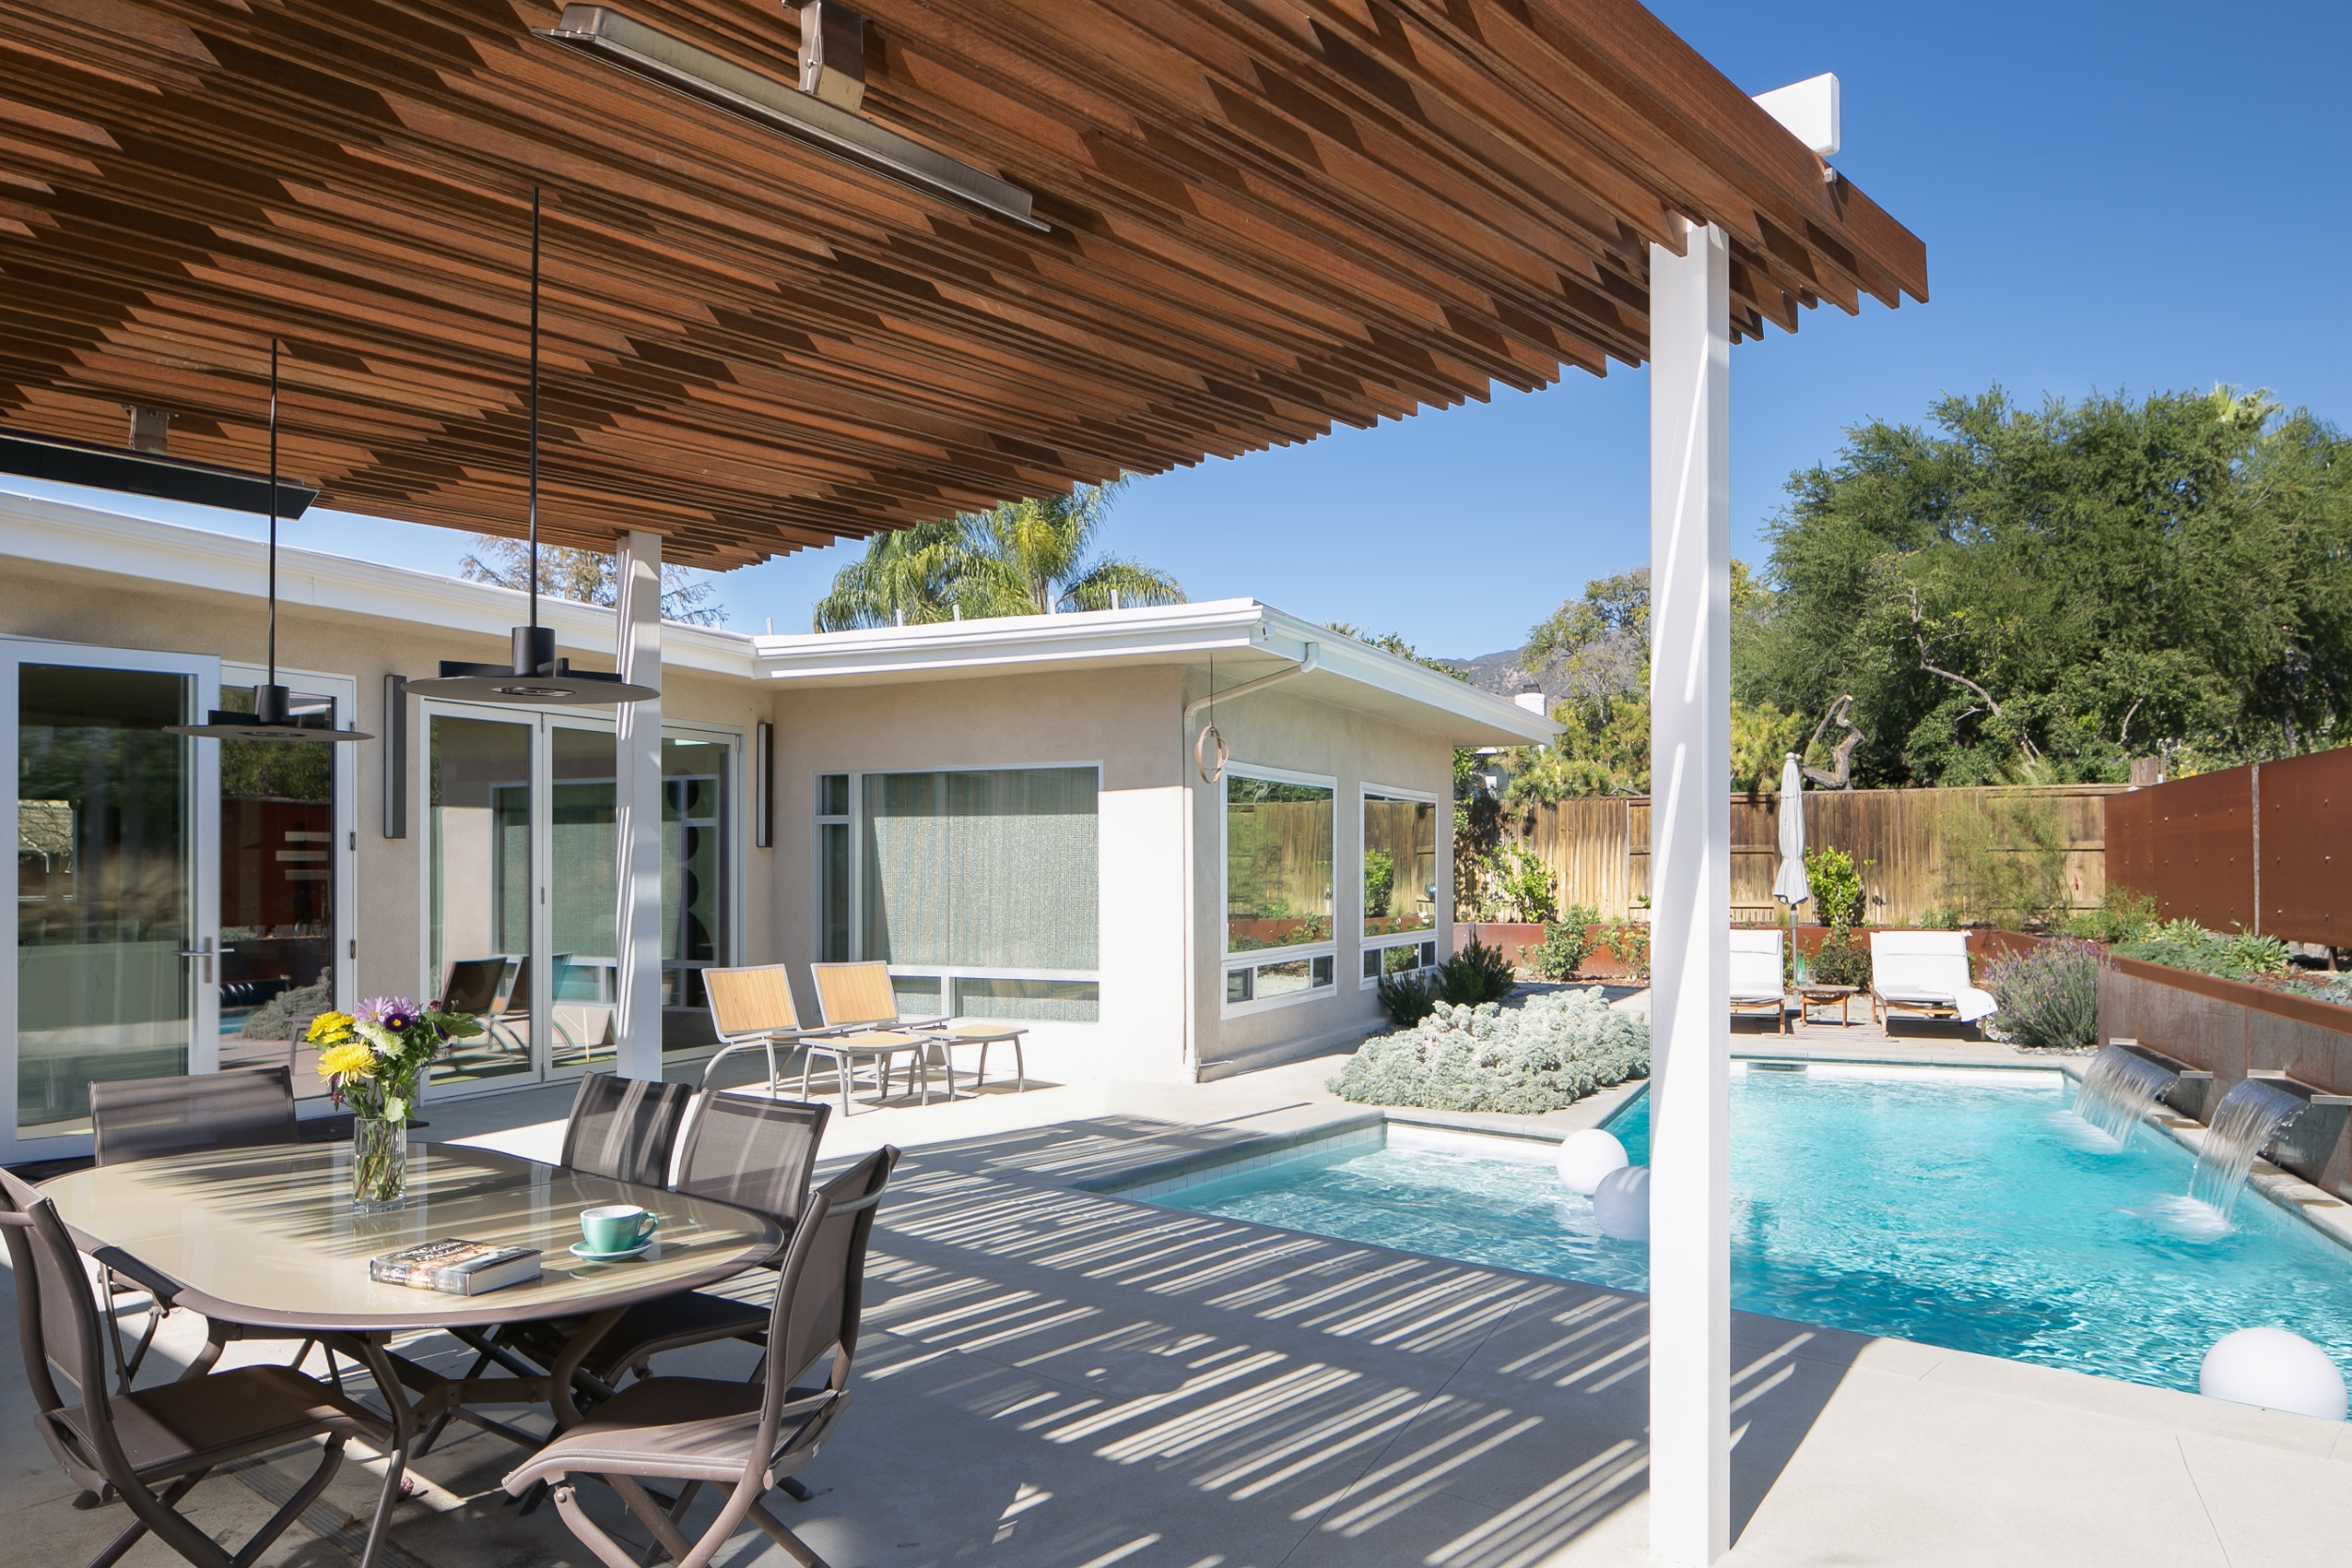 mid century modern exterior and